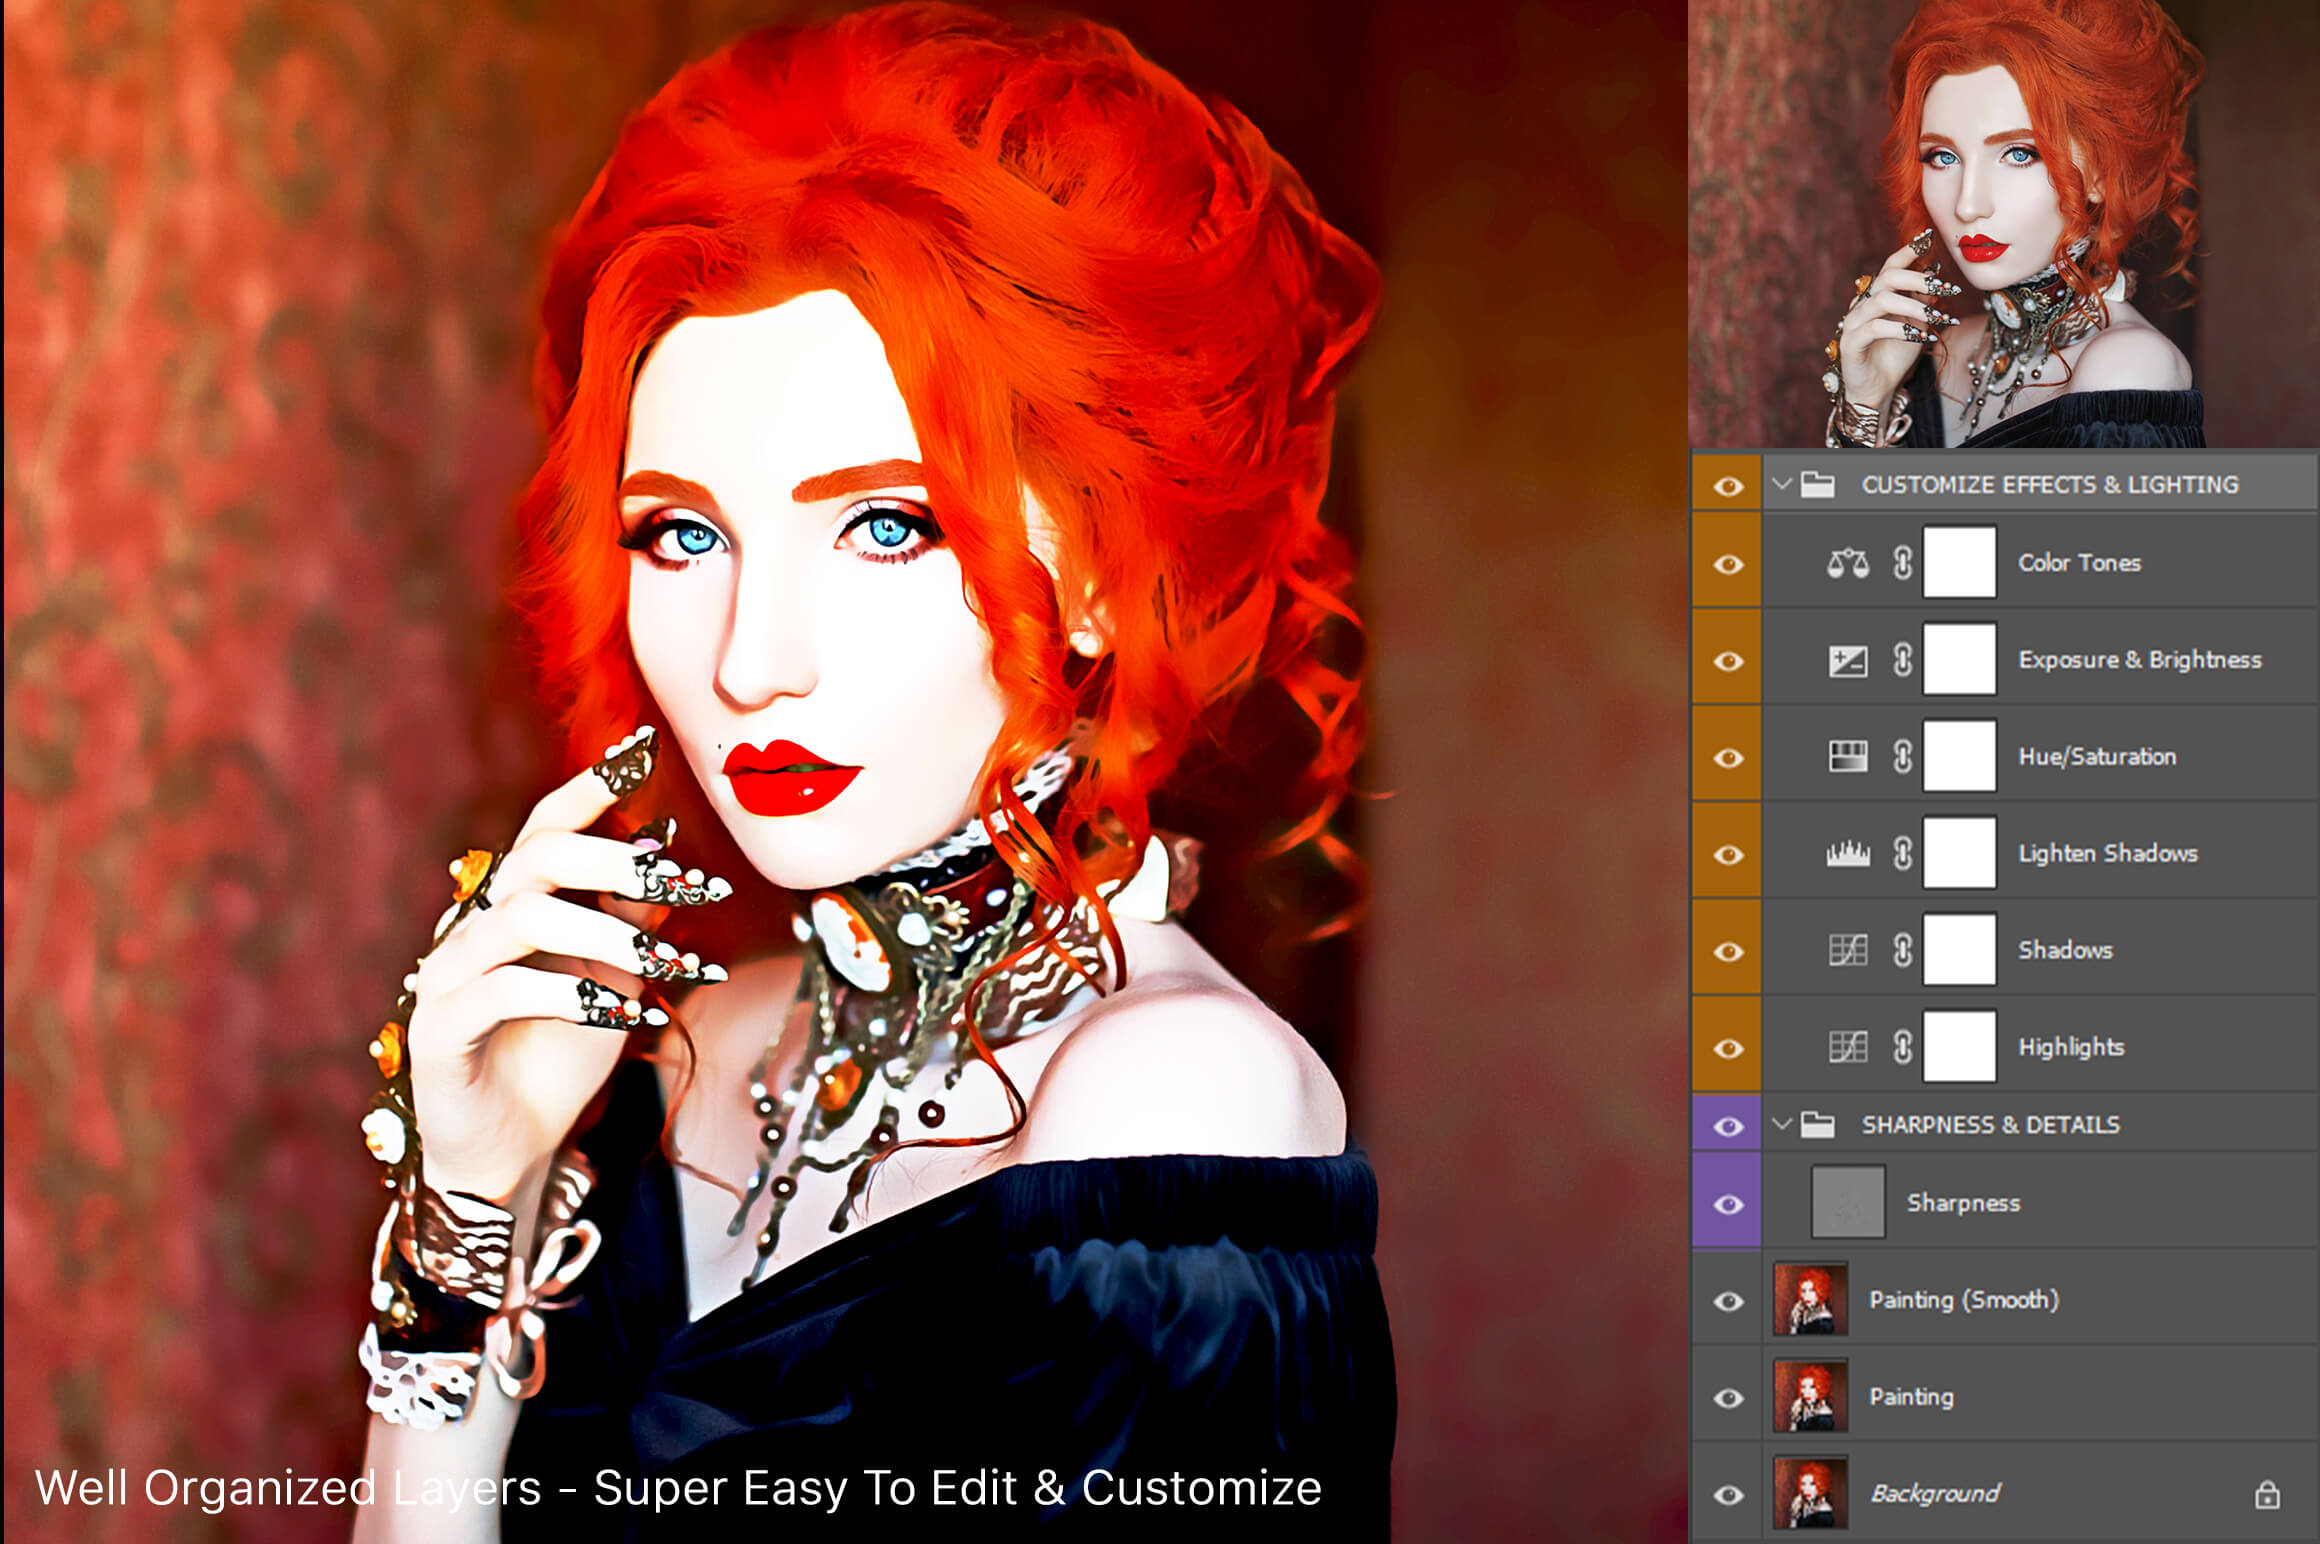 Artistic Painting Effect - Photoshop Action example image 7